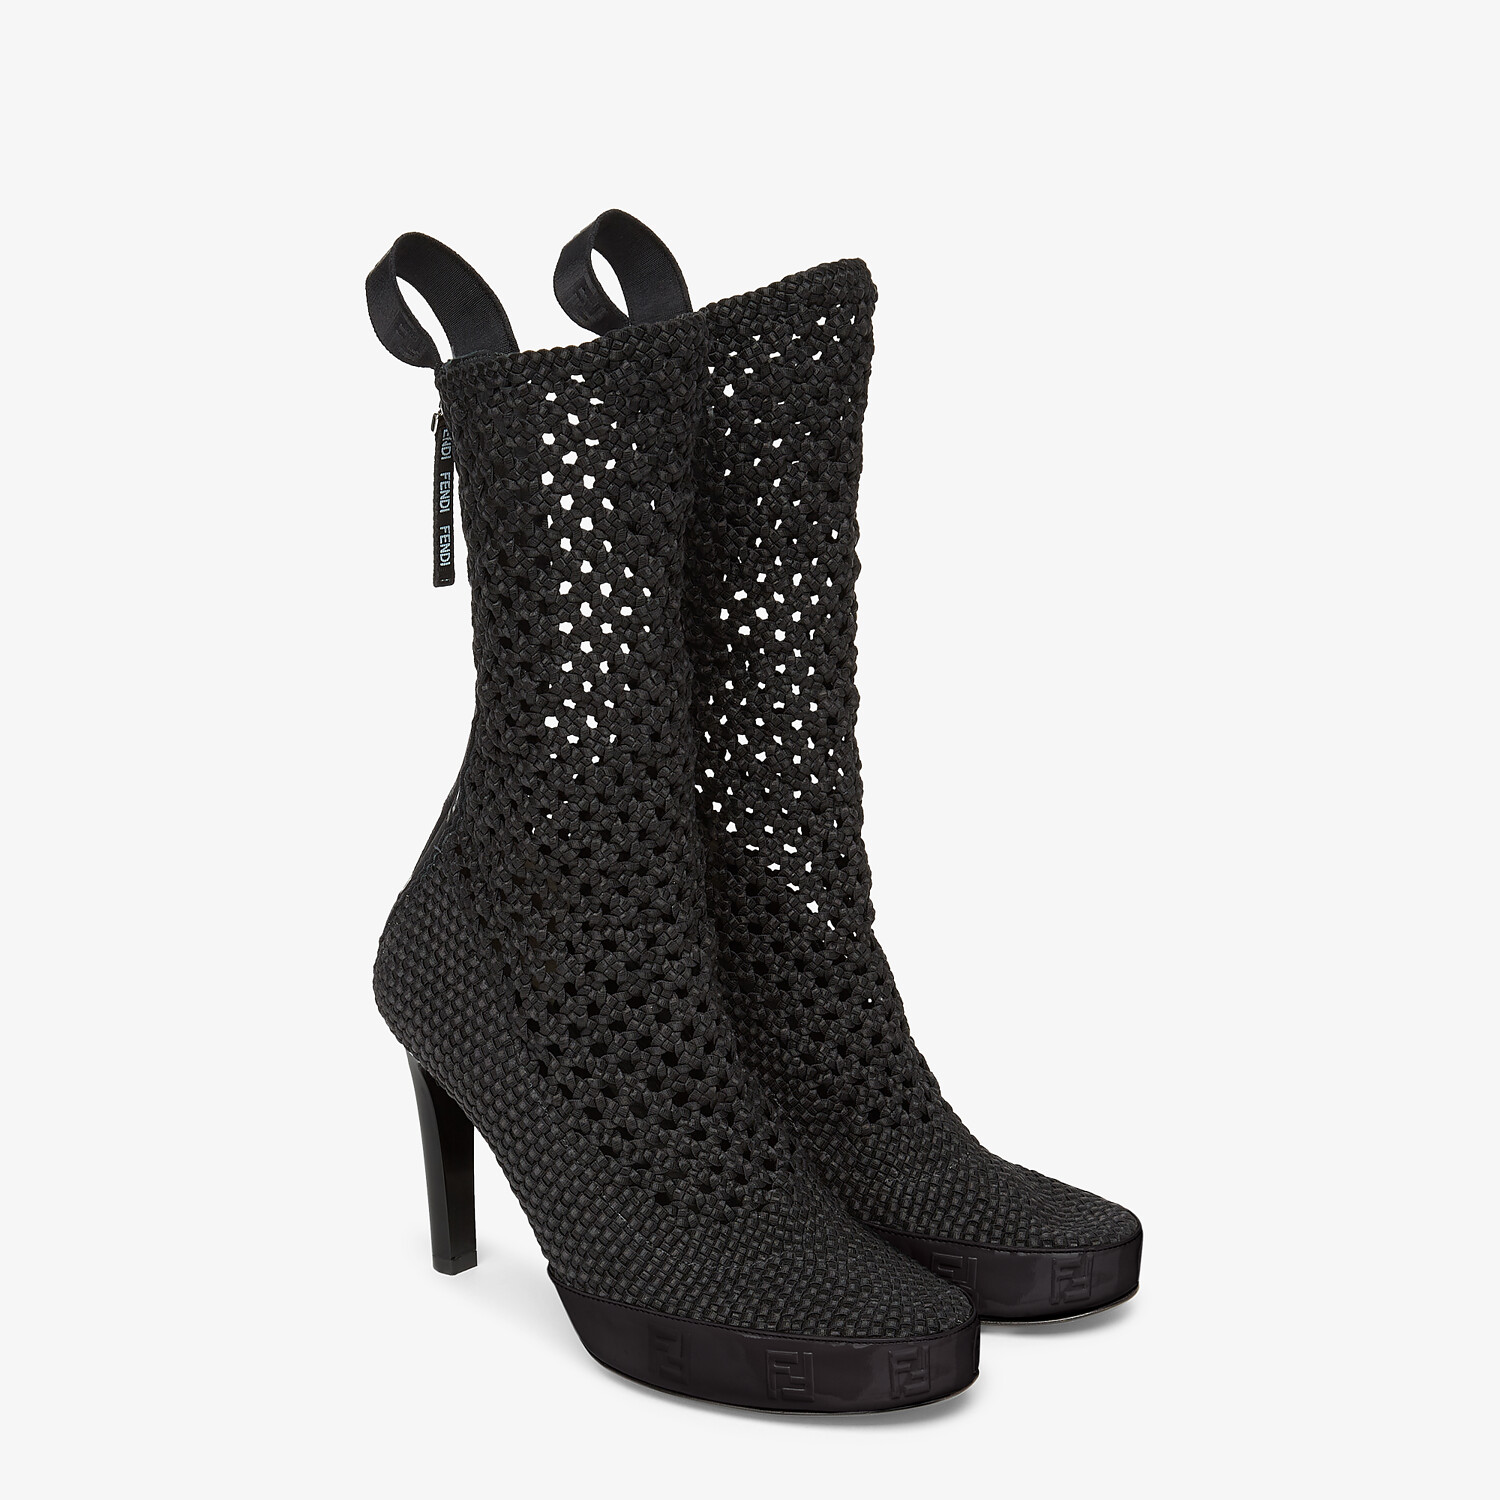 FENDI FENDI REFLECTIONS ANKLE BOOTS - Black elasticated lace booties - view 4 detail